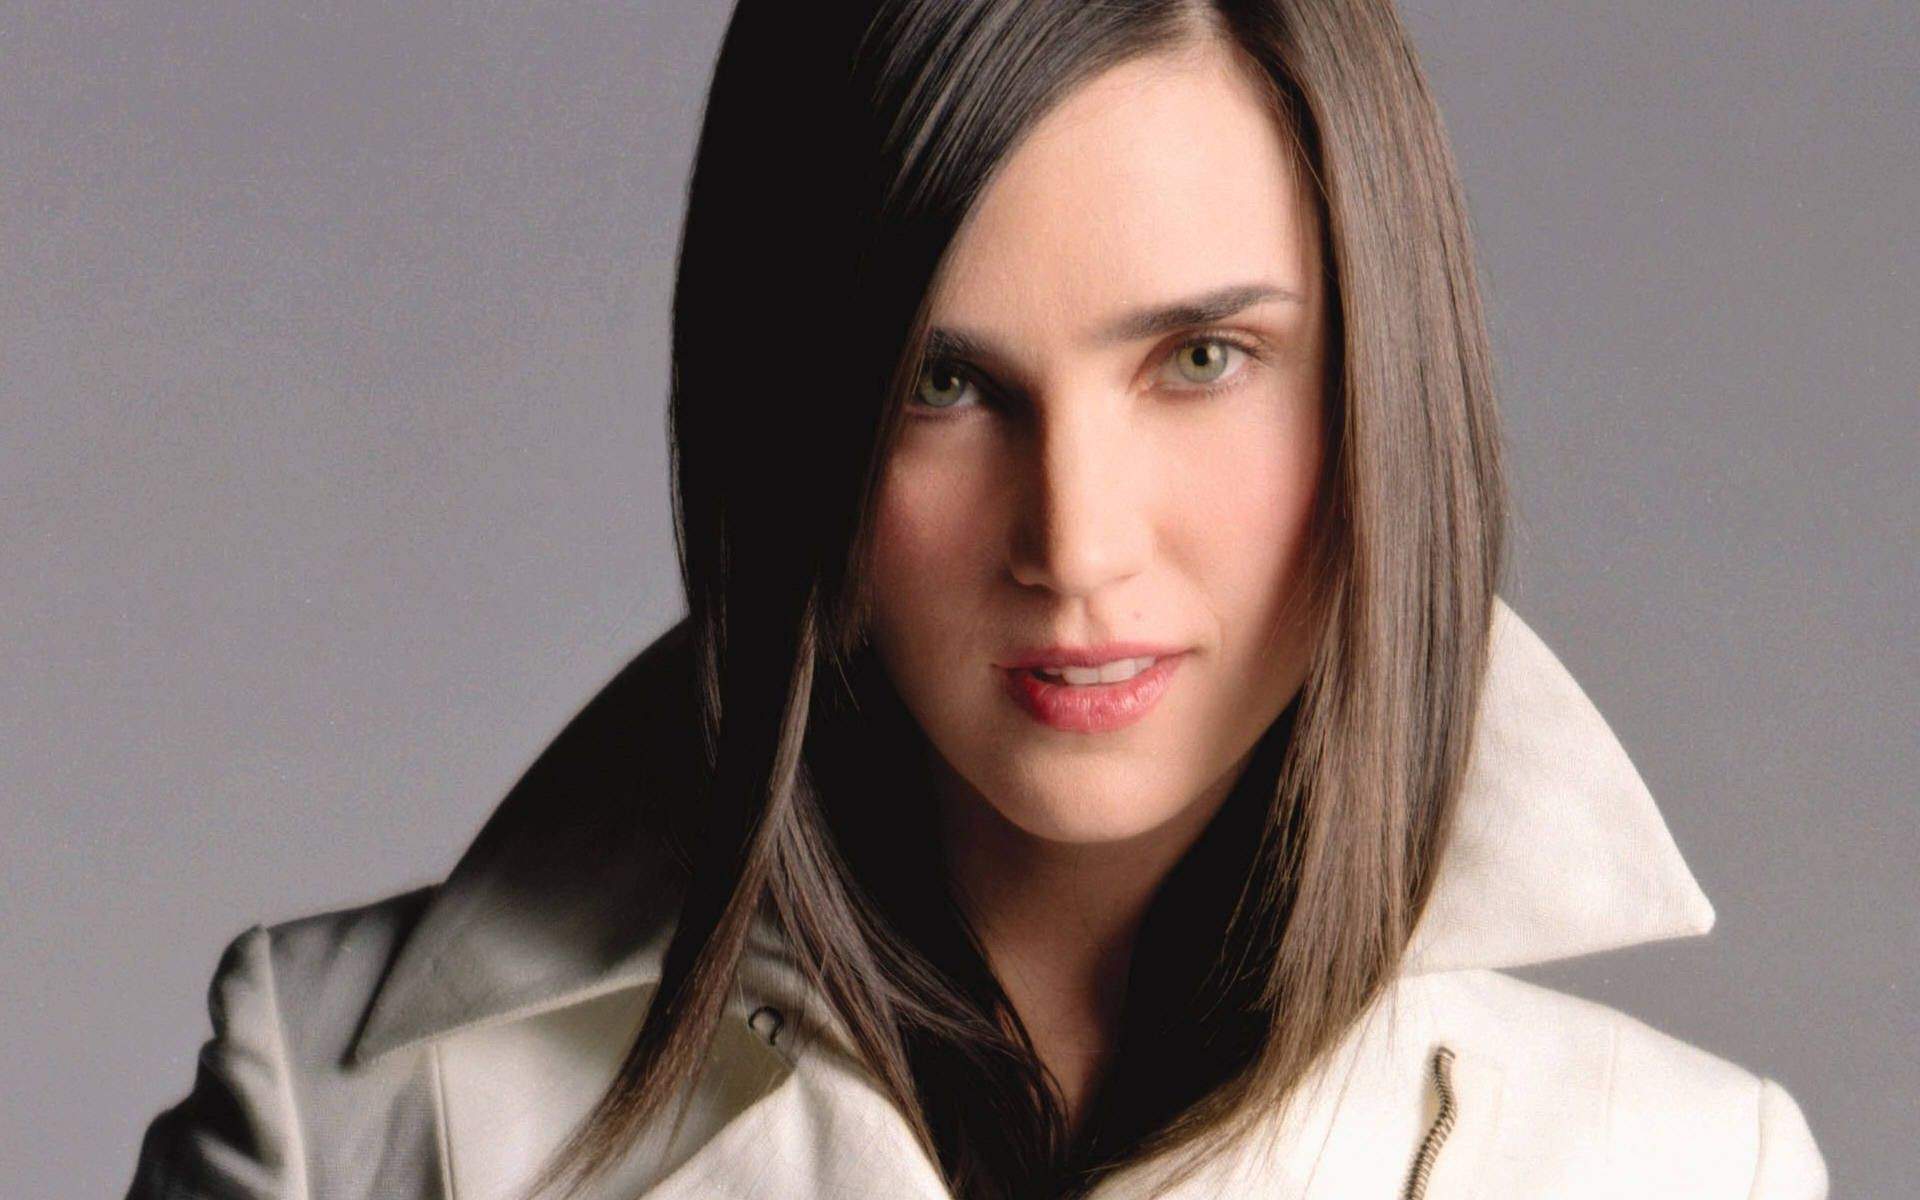 … HD Jennifer Connelly Wallpaper For Background, Latina Scheerer 76 …